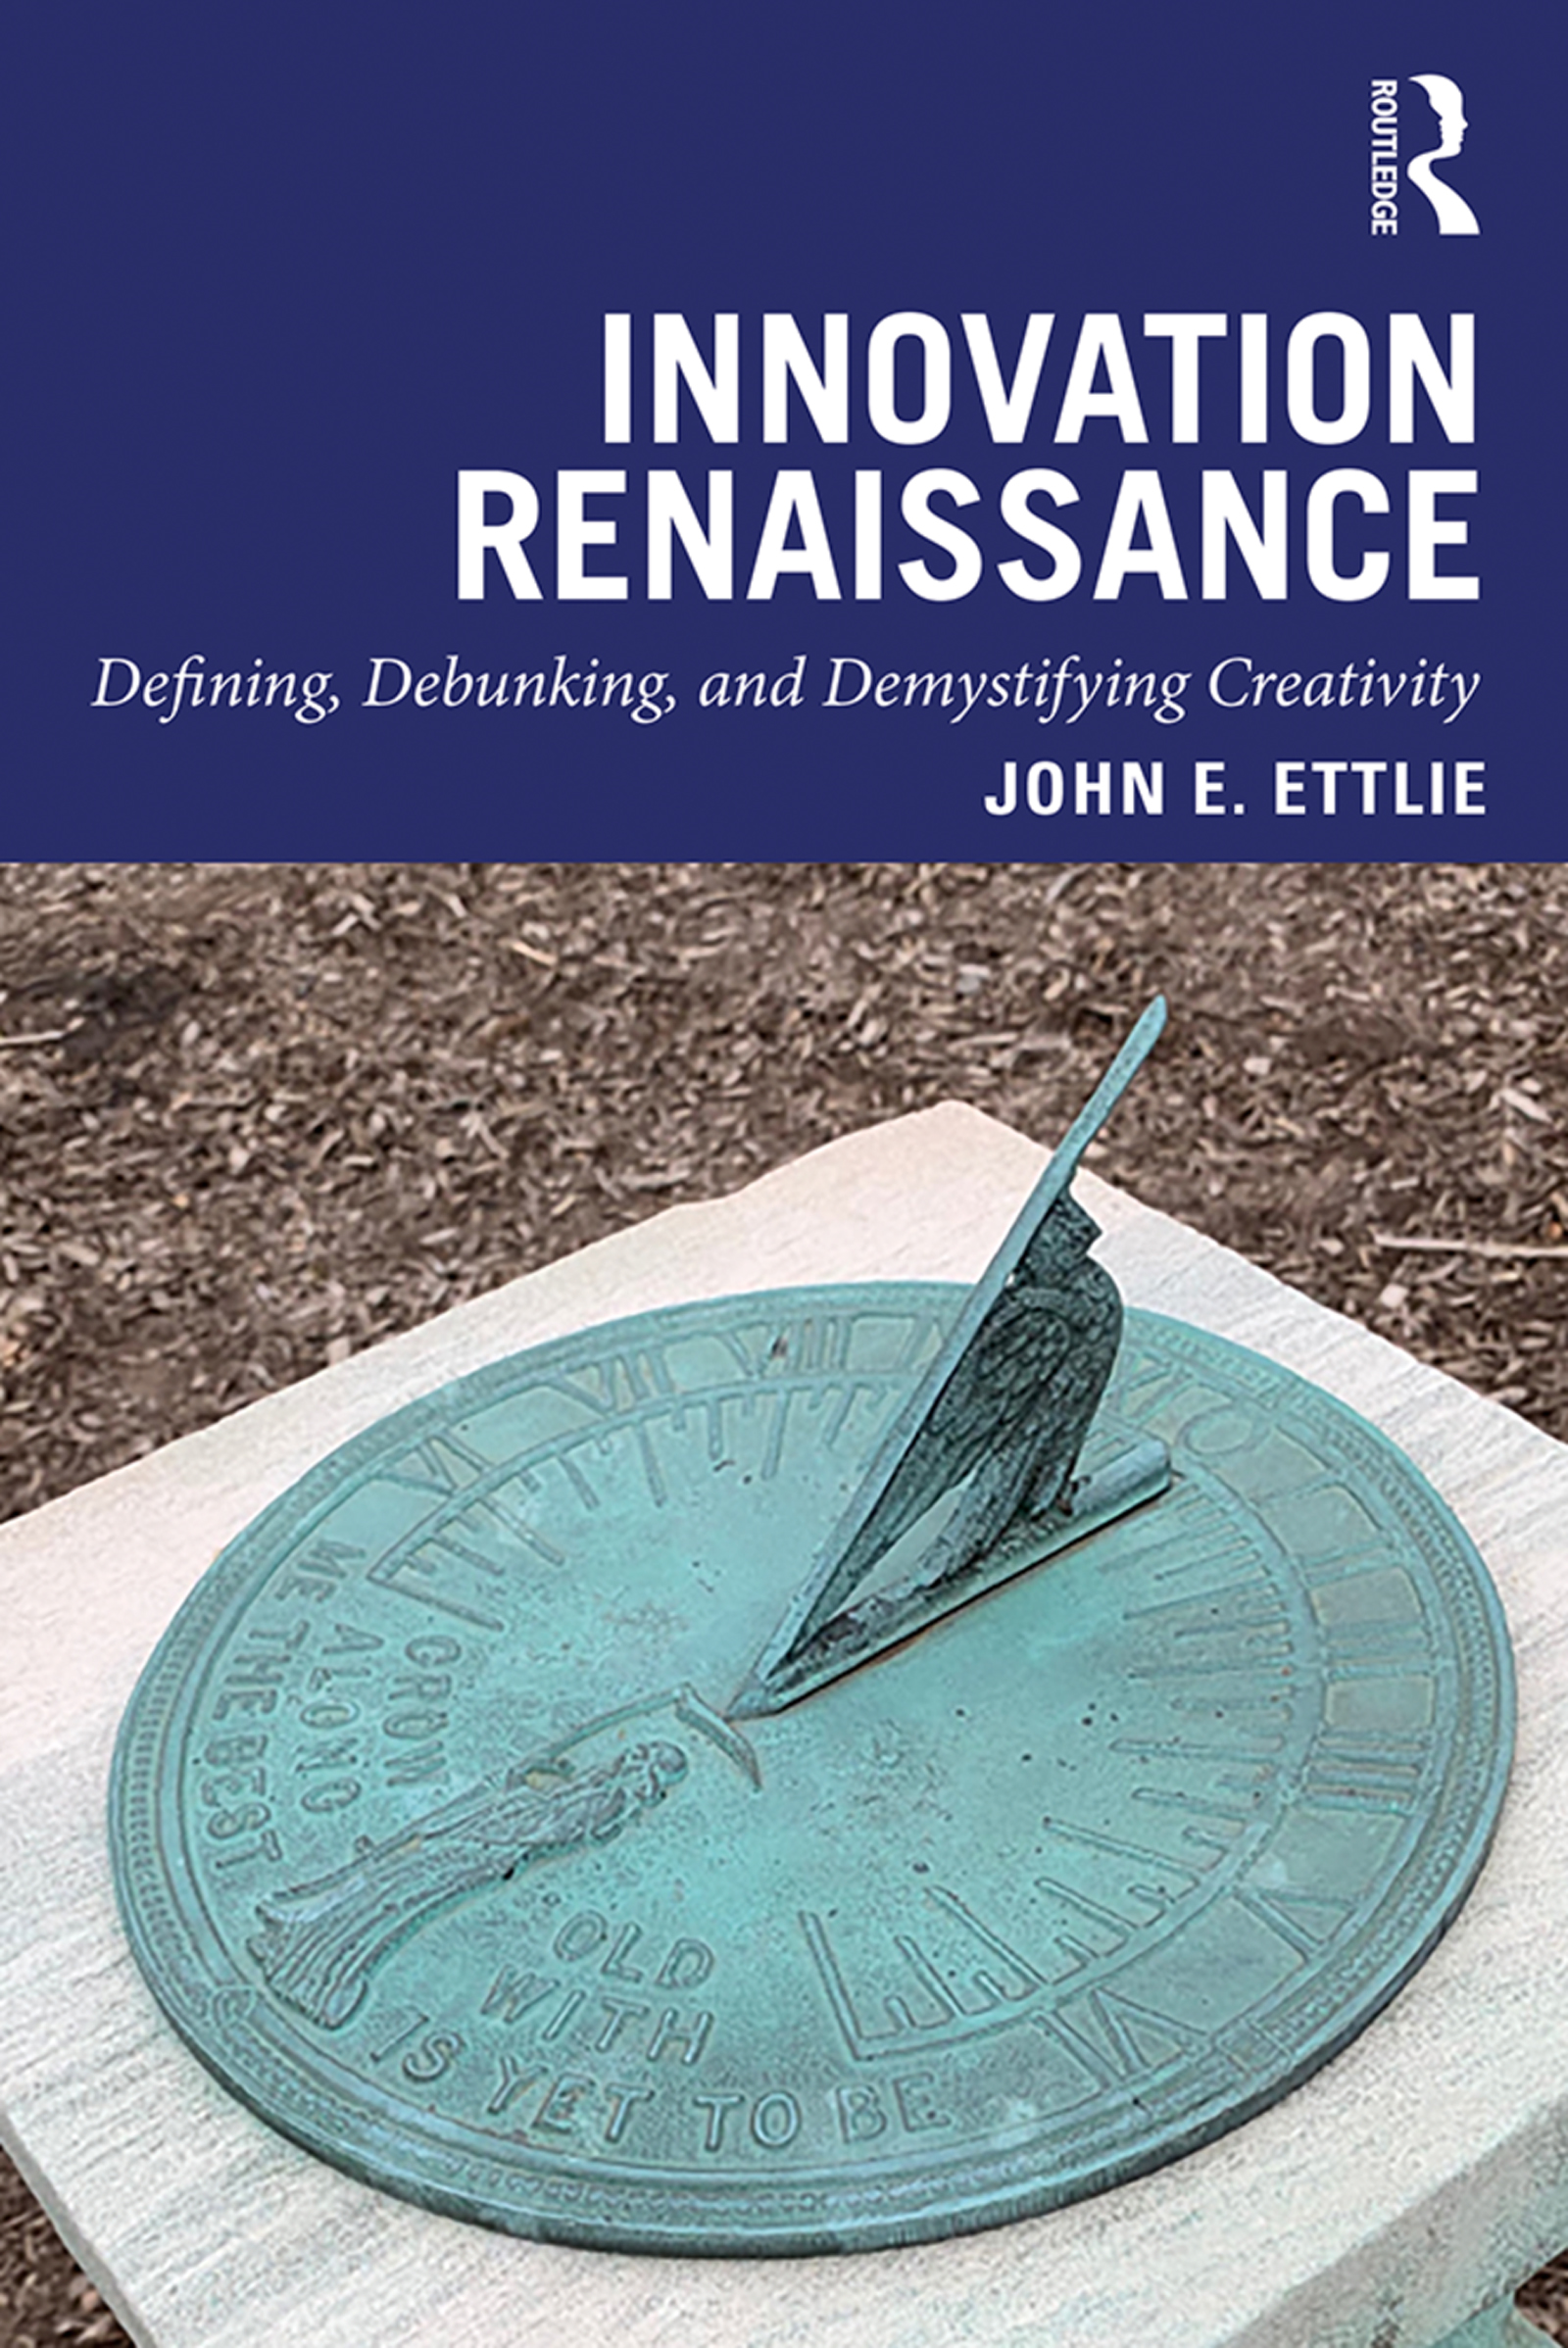 Innovation Renaissance: Defining, Debunking, and Demystifying Creativity book cover